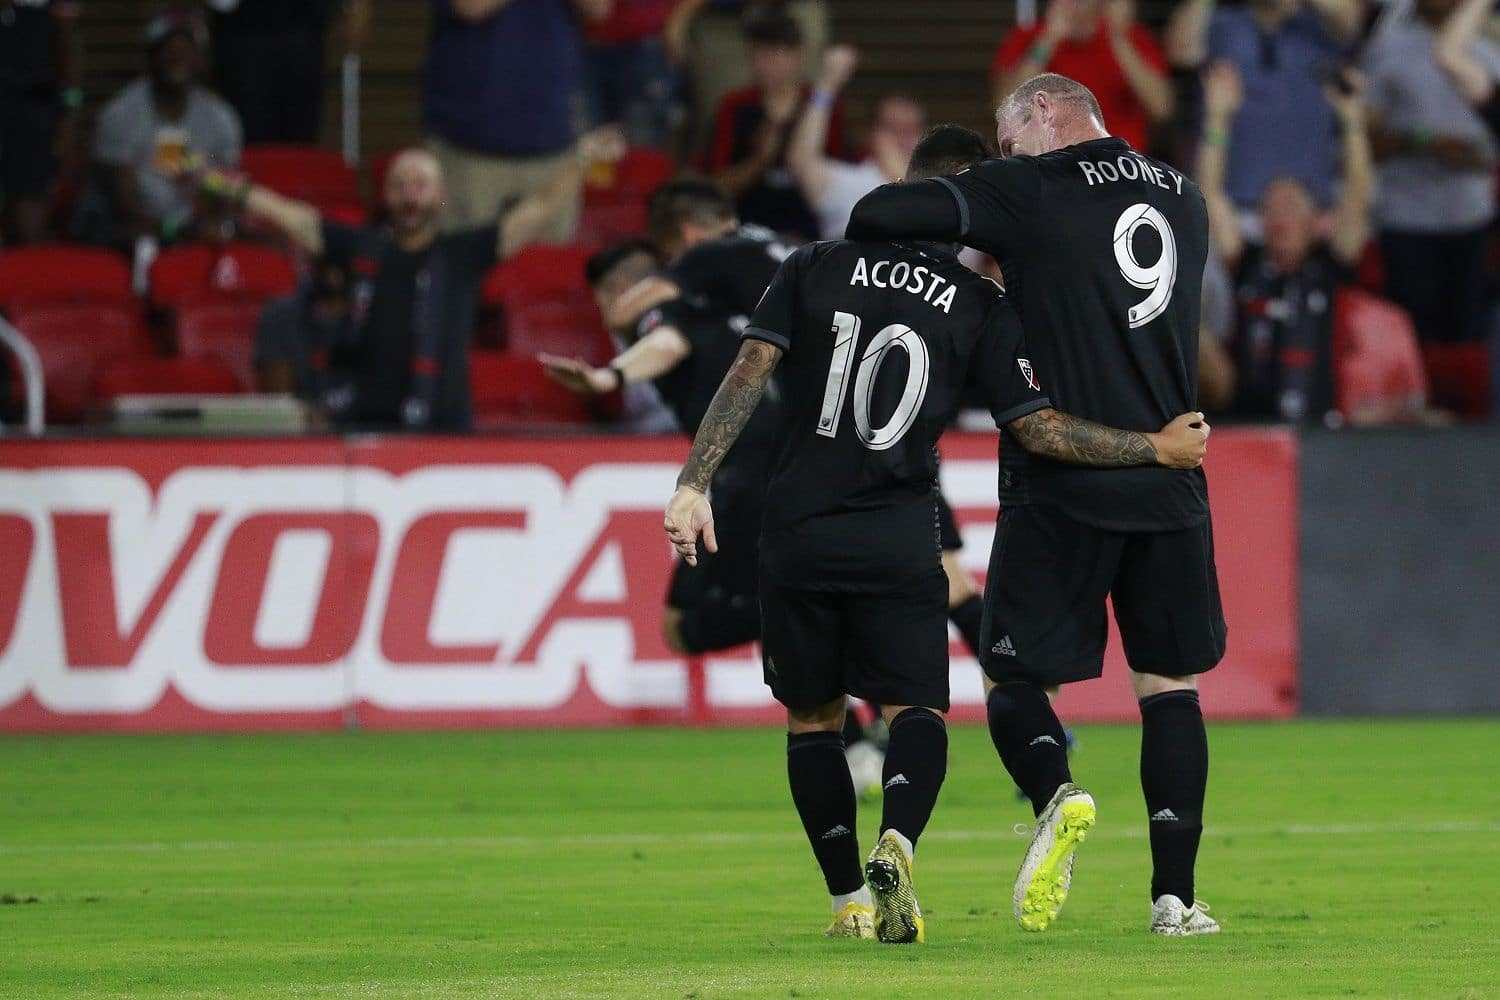 WASHINGTON, DC - JULY 14: Wayne Rooney #9 and Luciano Acosta #10 of D.C. United celebrate after Paul Arriola #7 (not pictured) scored a goal in the second half against the Vancouver Whitecaps at Audi Field on July 14, 2018 in Washington, DC. (Photo by Patrick McDermott/Getty Images)